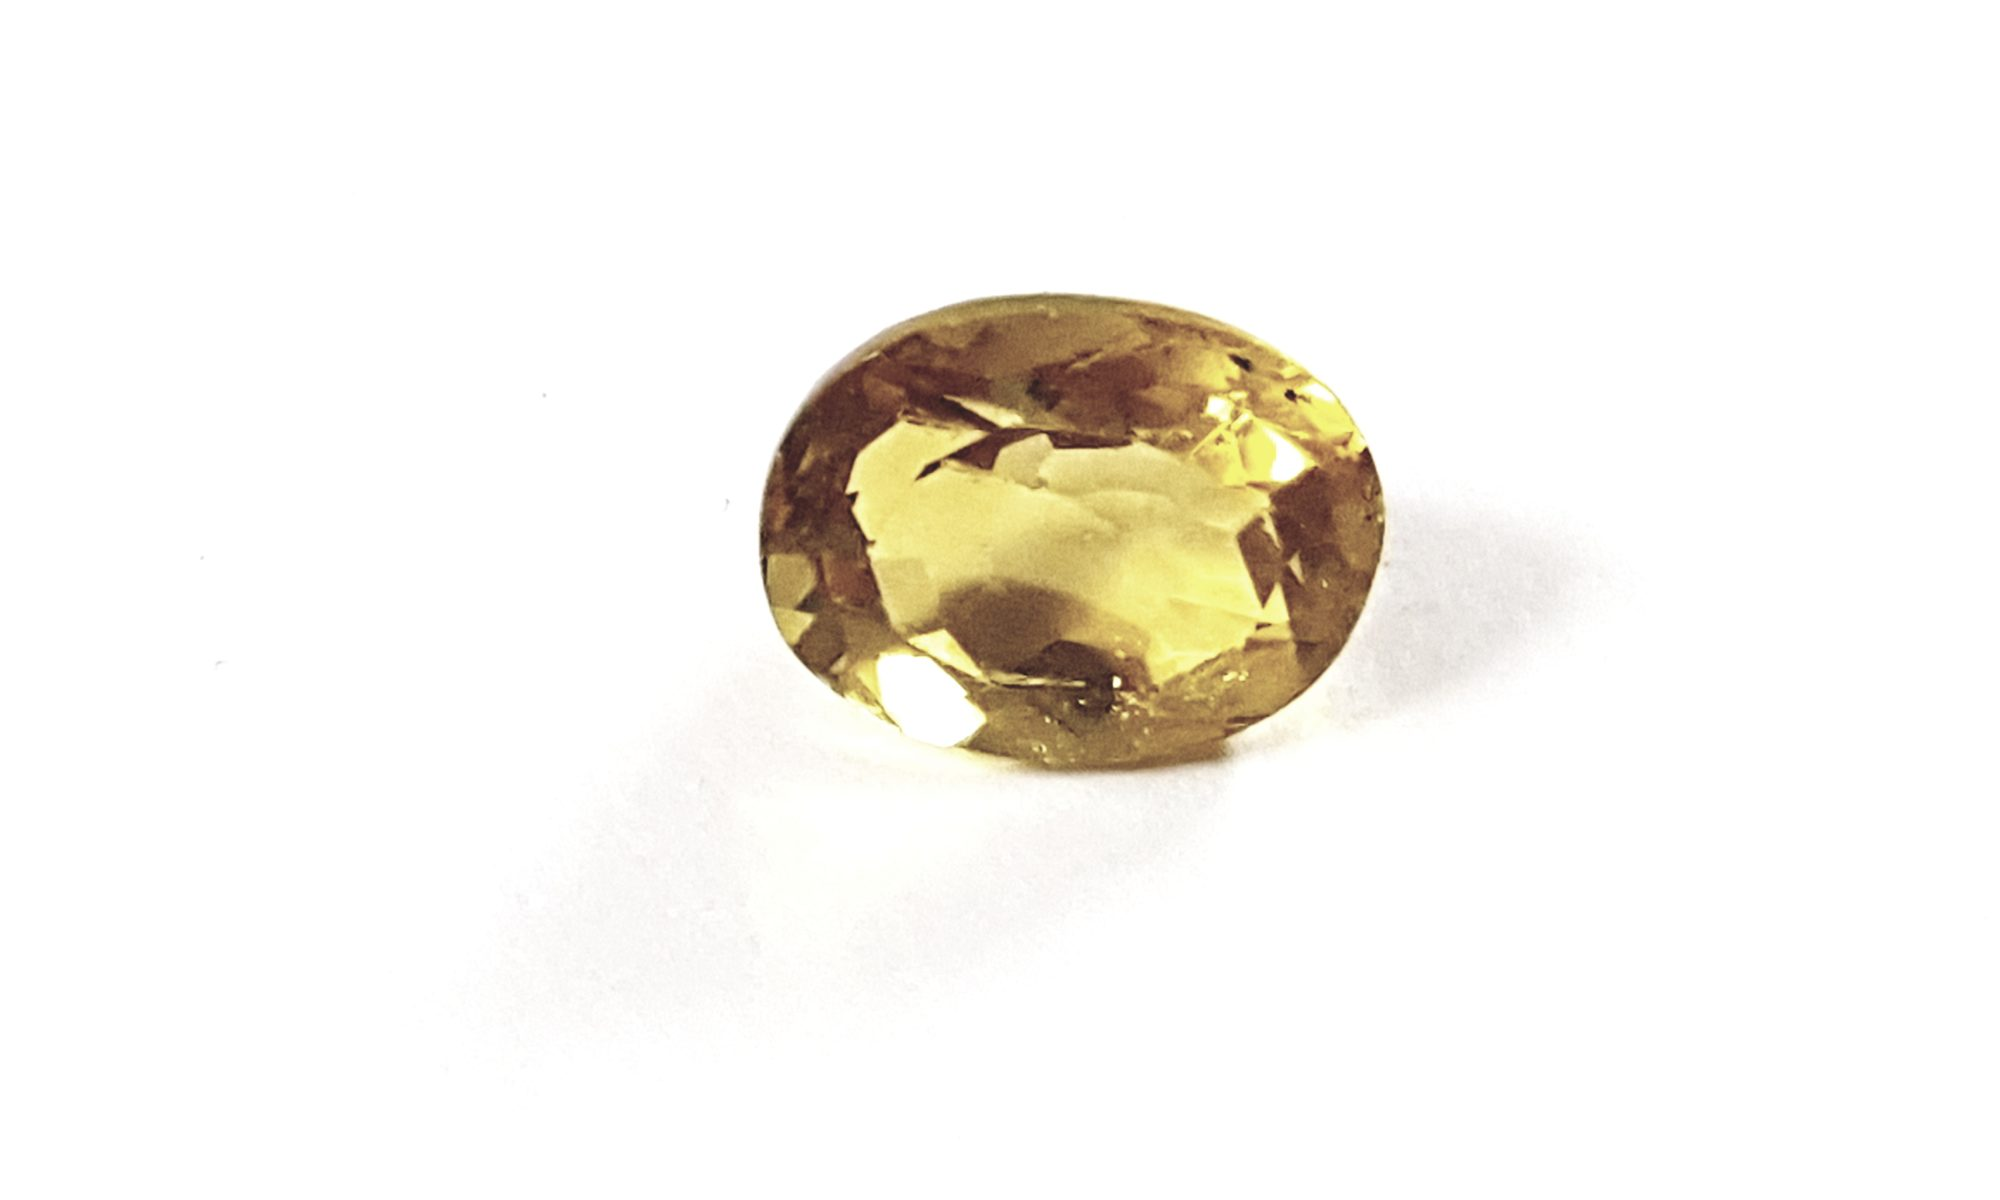 yellow flourspar or yellow florspar - rudraveda.com (21)